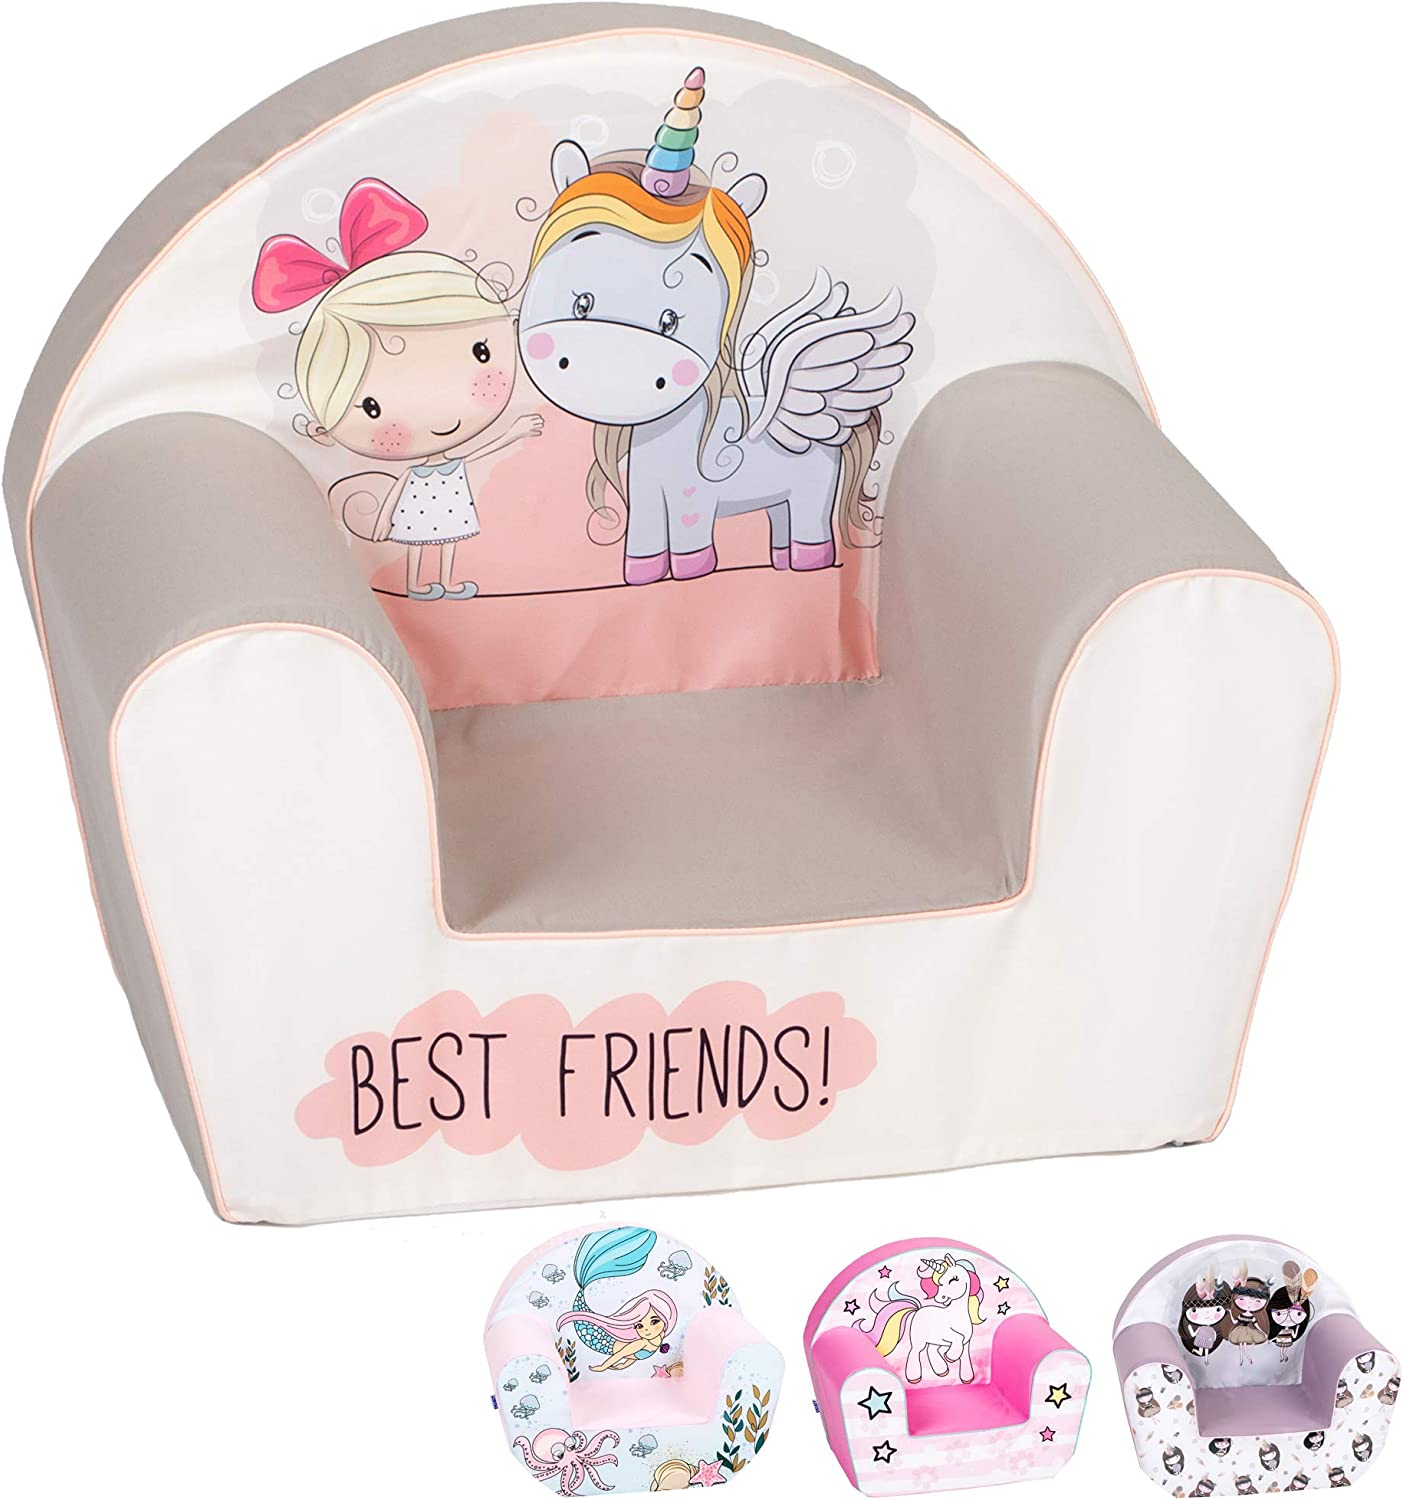 DELSIT Toddler Chair & Kids Armchair - European Made Premium Quality - Perfect Reading Chair for Kids - Lightweight Playroom Decor (Magical Unicorn)